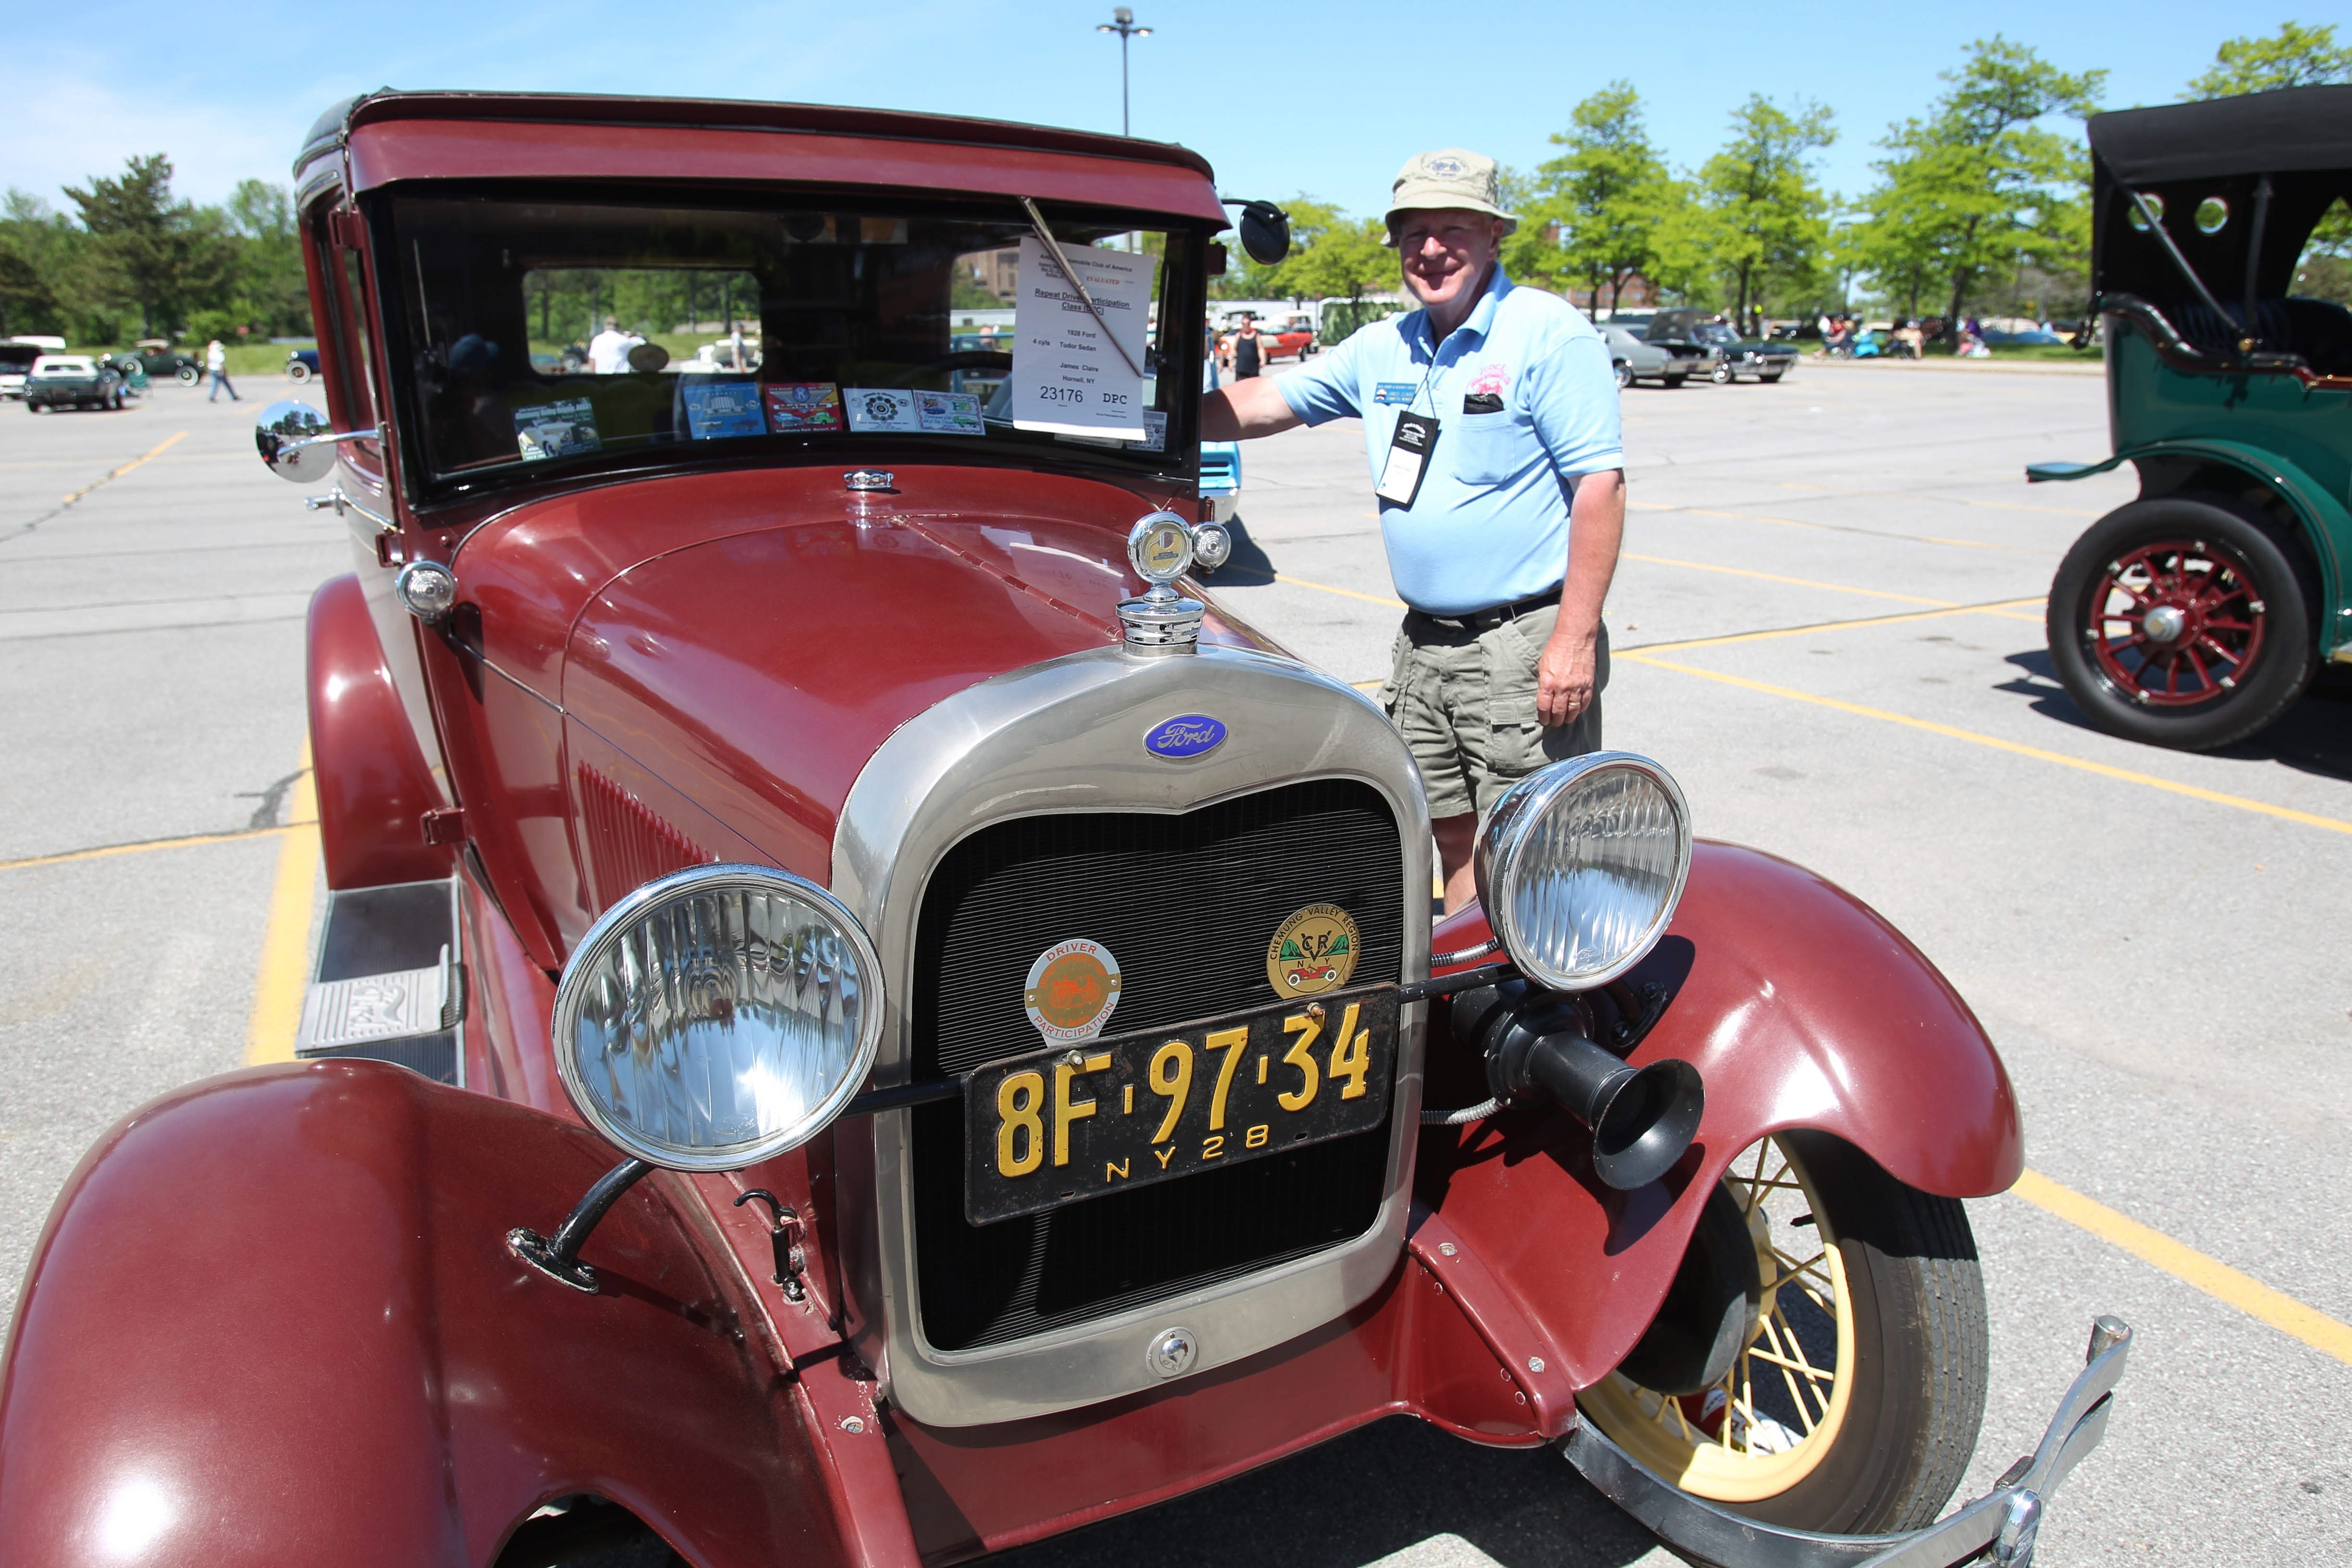 Jim Claire's 1928 Model A Ford was one of more the 400 entries at this weekend's Antique Automobile Club of America meet at the University at Buffalo. The show ended Saturday.